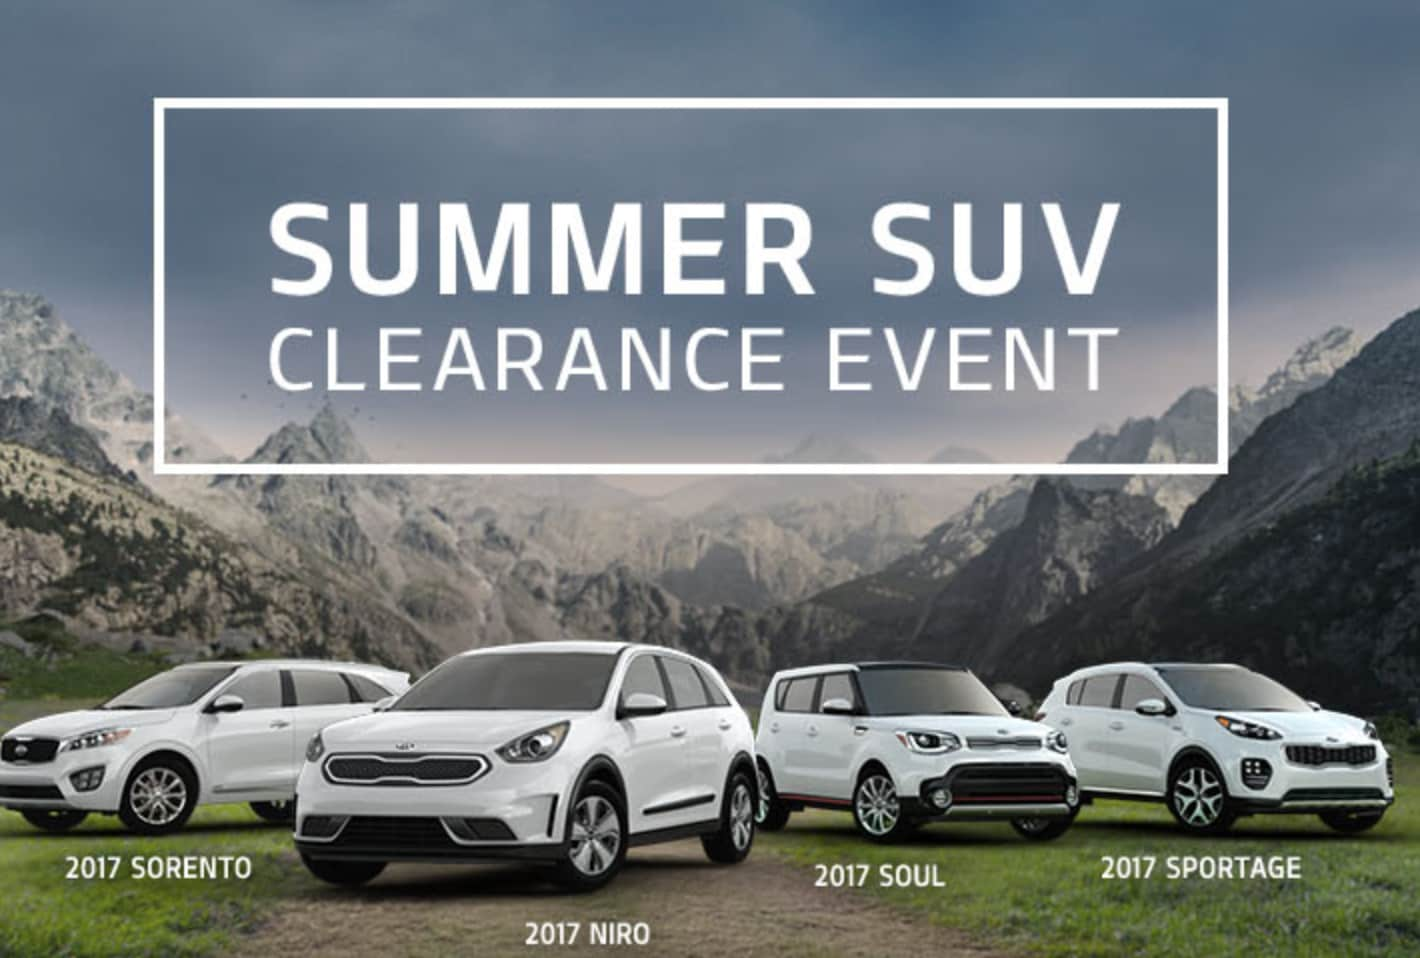 post htm index offers summer list special tags suv kia event littleton clearance area blog arapahoe